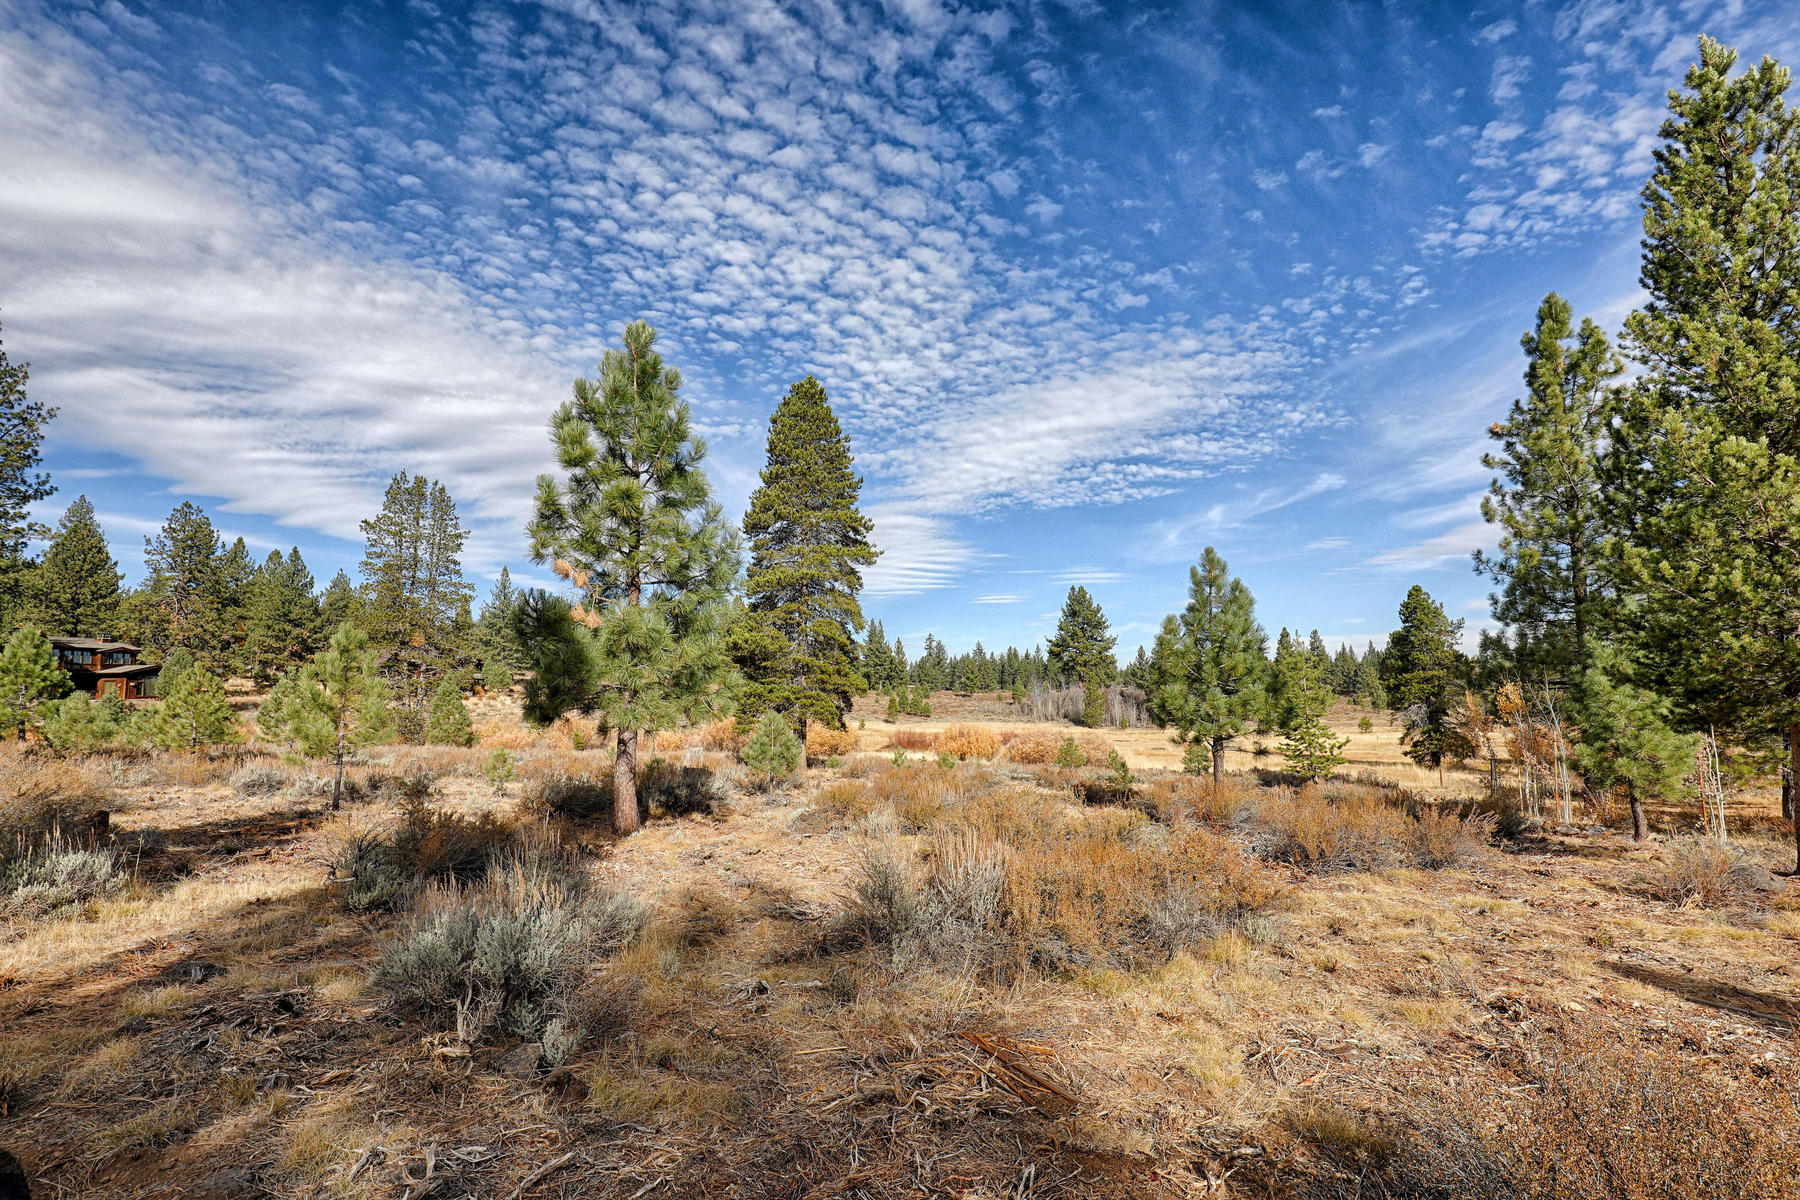 Terreno por un Venta en 13185 Snowshoe Thompson Cir, Truckee, Ca 96161 13185 Snowshoe Thompson Cir Truckee, California 96161 Estados Unidos